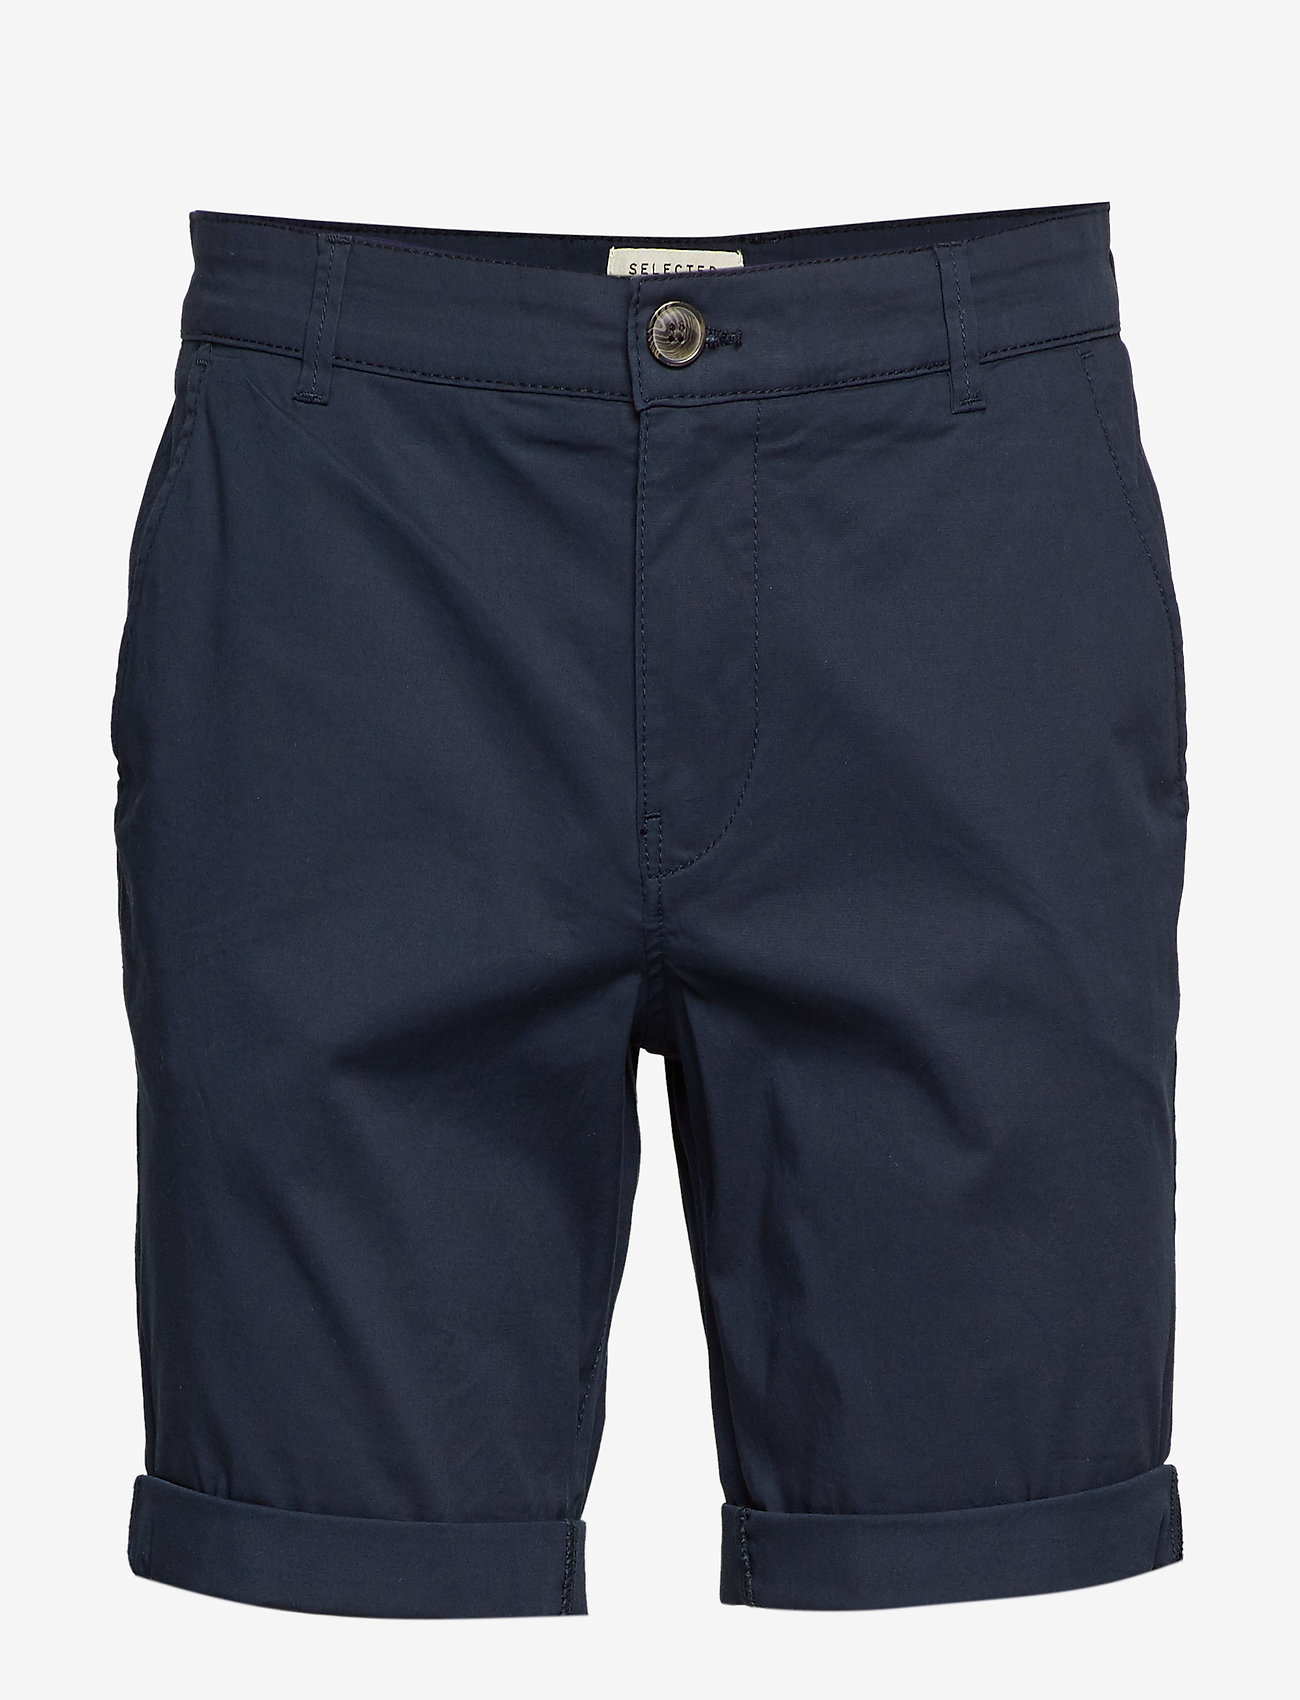 Selected Homme - SLHSTRAIGHT-PARIS SHORTS W NOOS - chino's shorts - dark sapphire - 0